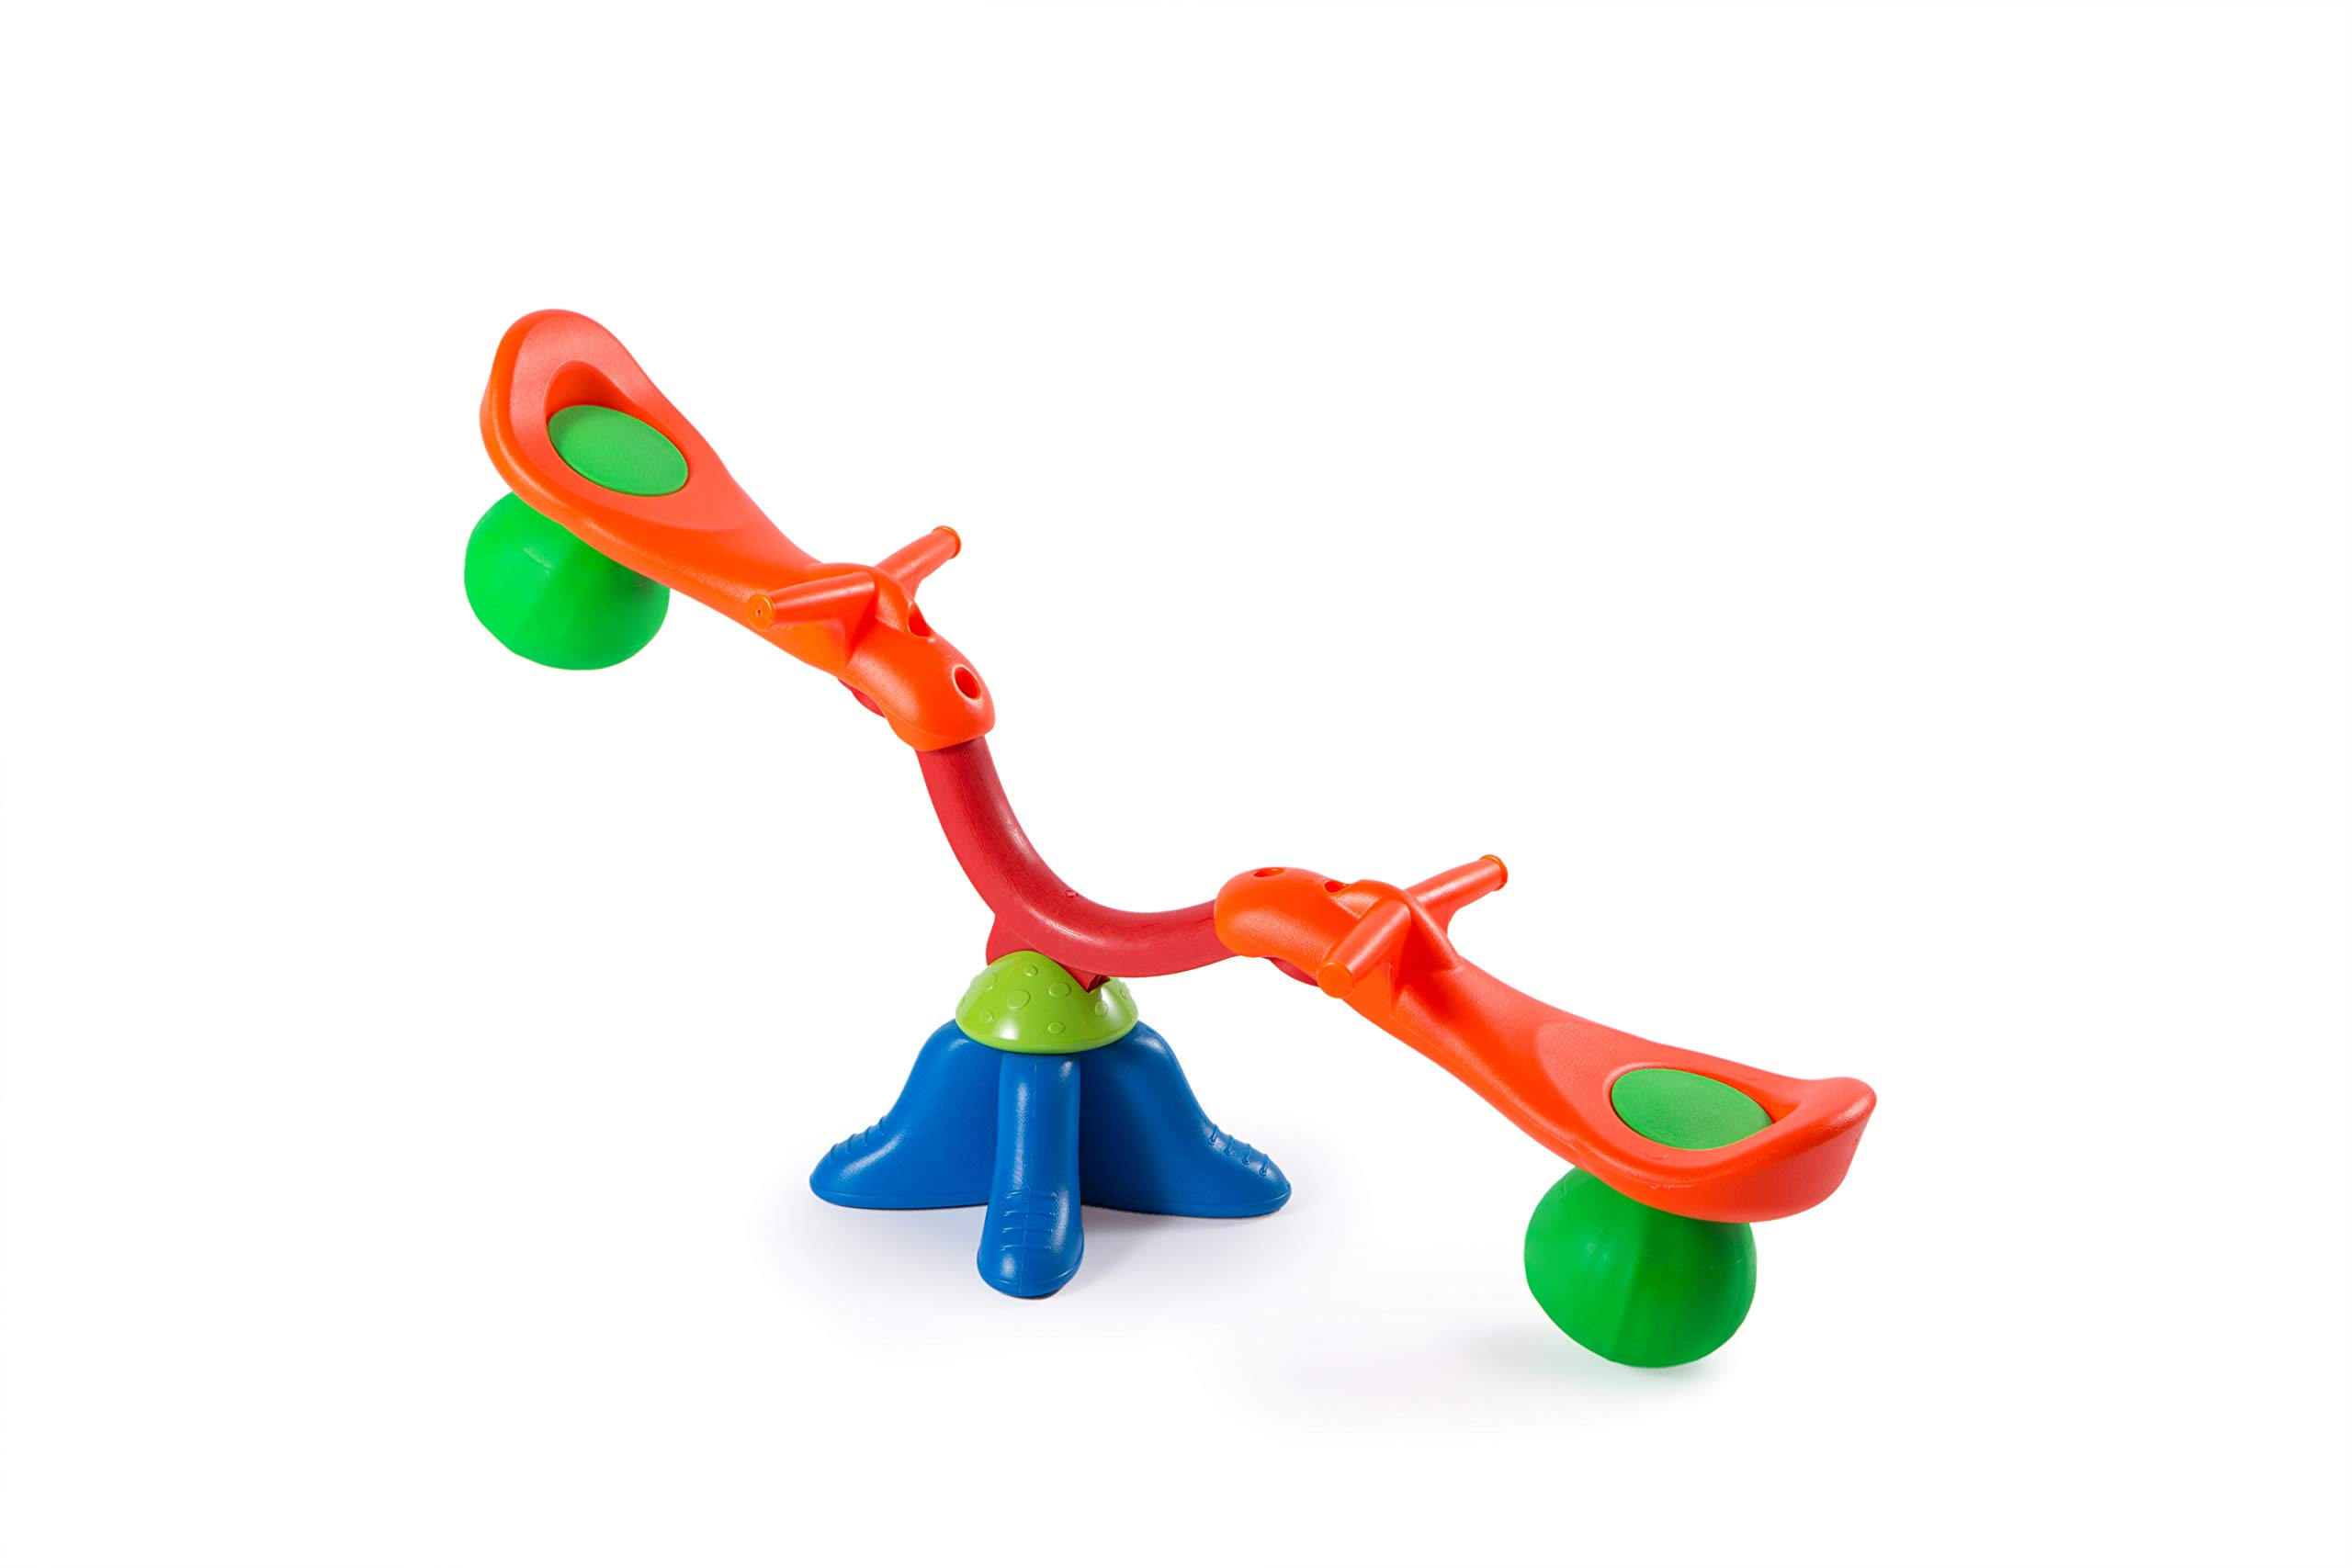 NBD Corp Seesaw - Kids Teeter Totter Indoor Outdoor Toy for Kids That Can Rotate 360 Degrees Very Fun Playground Equipment